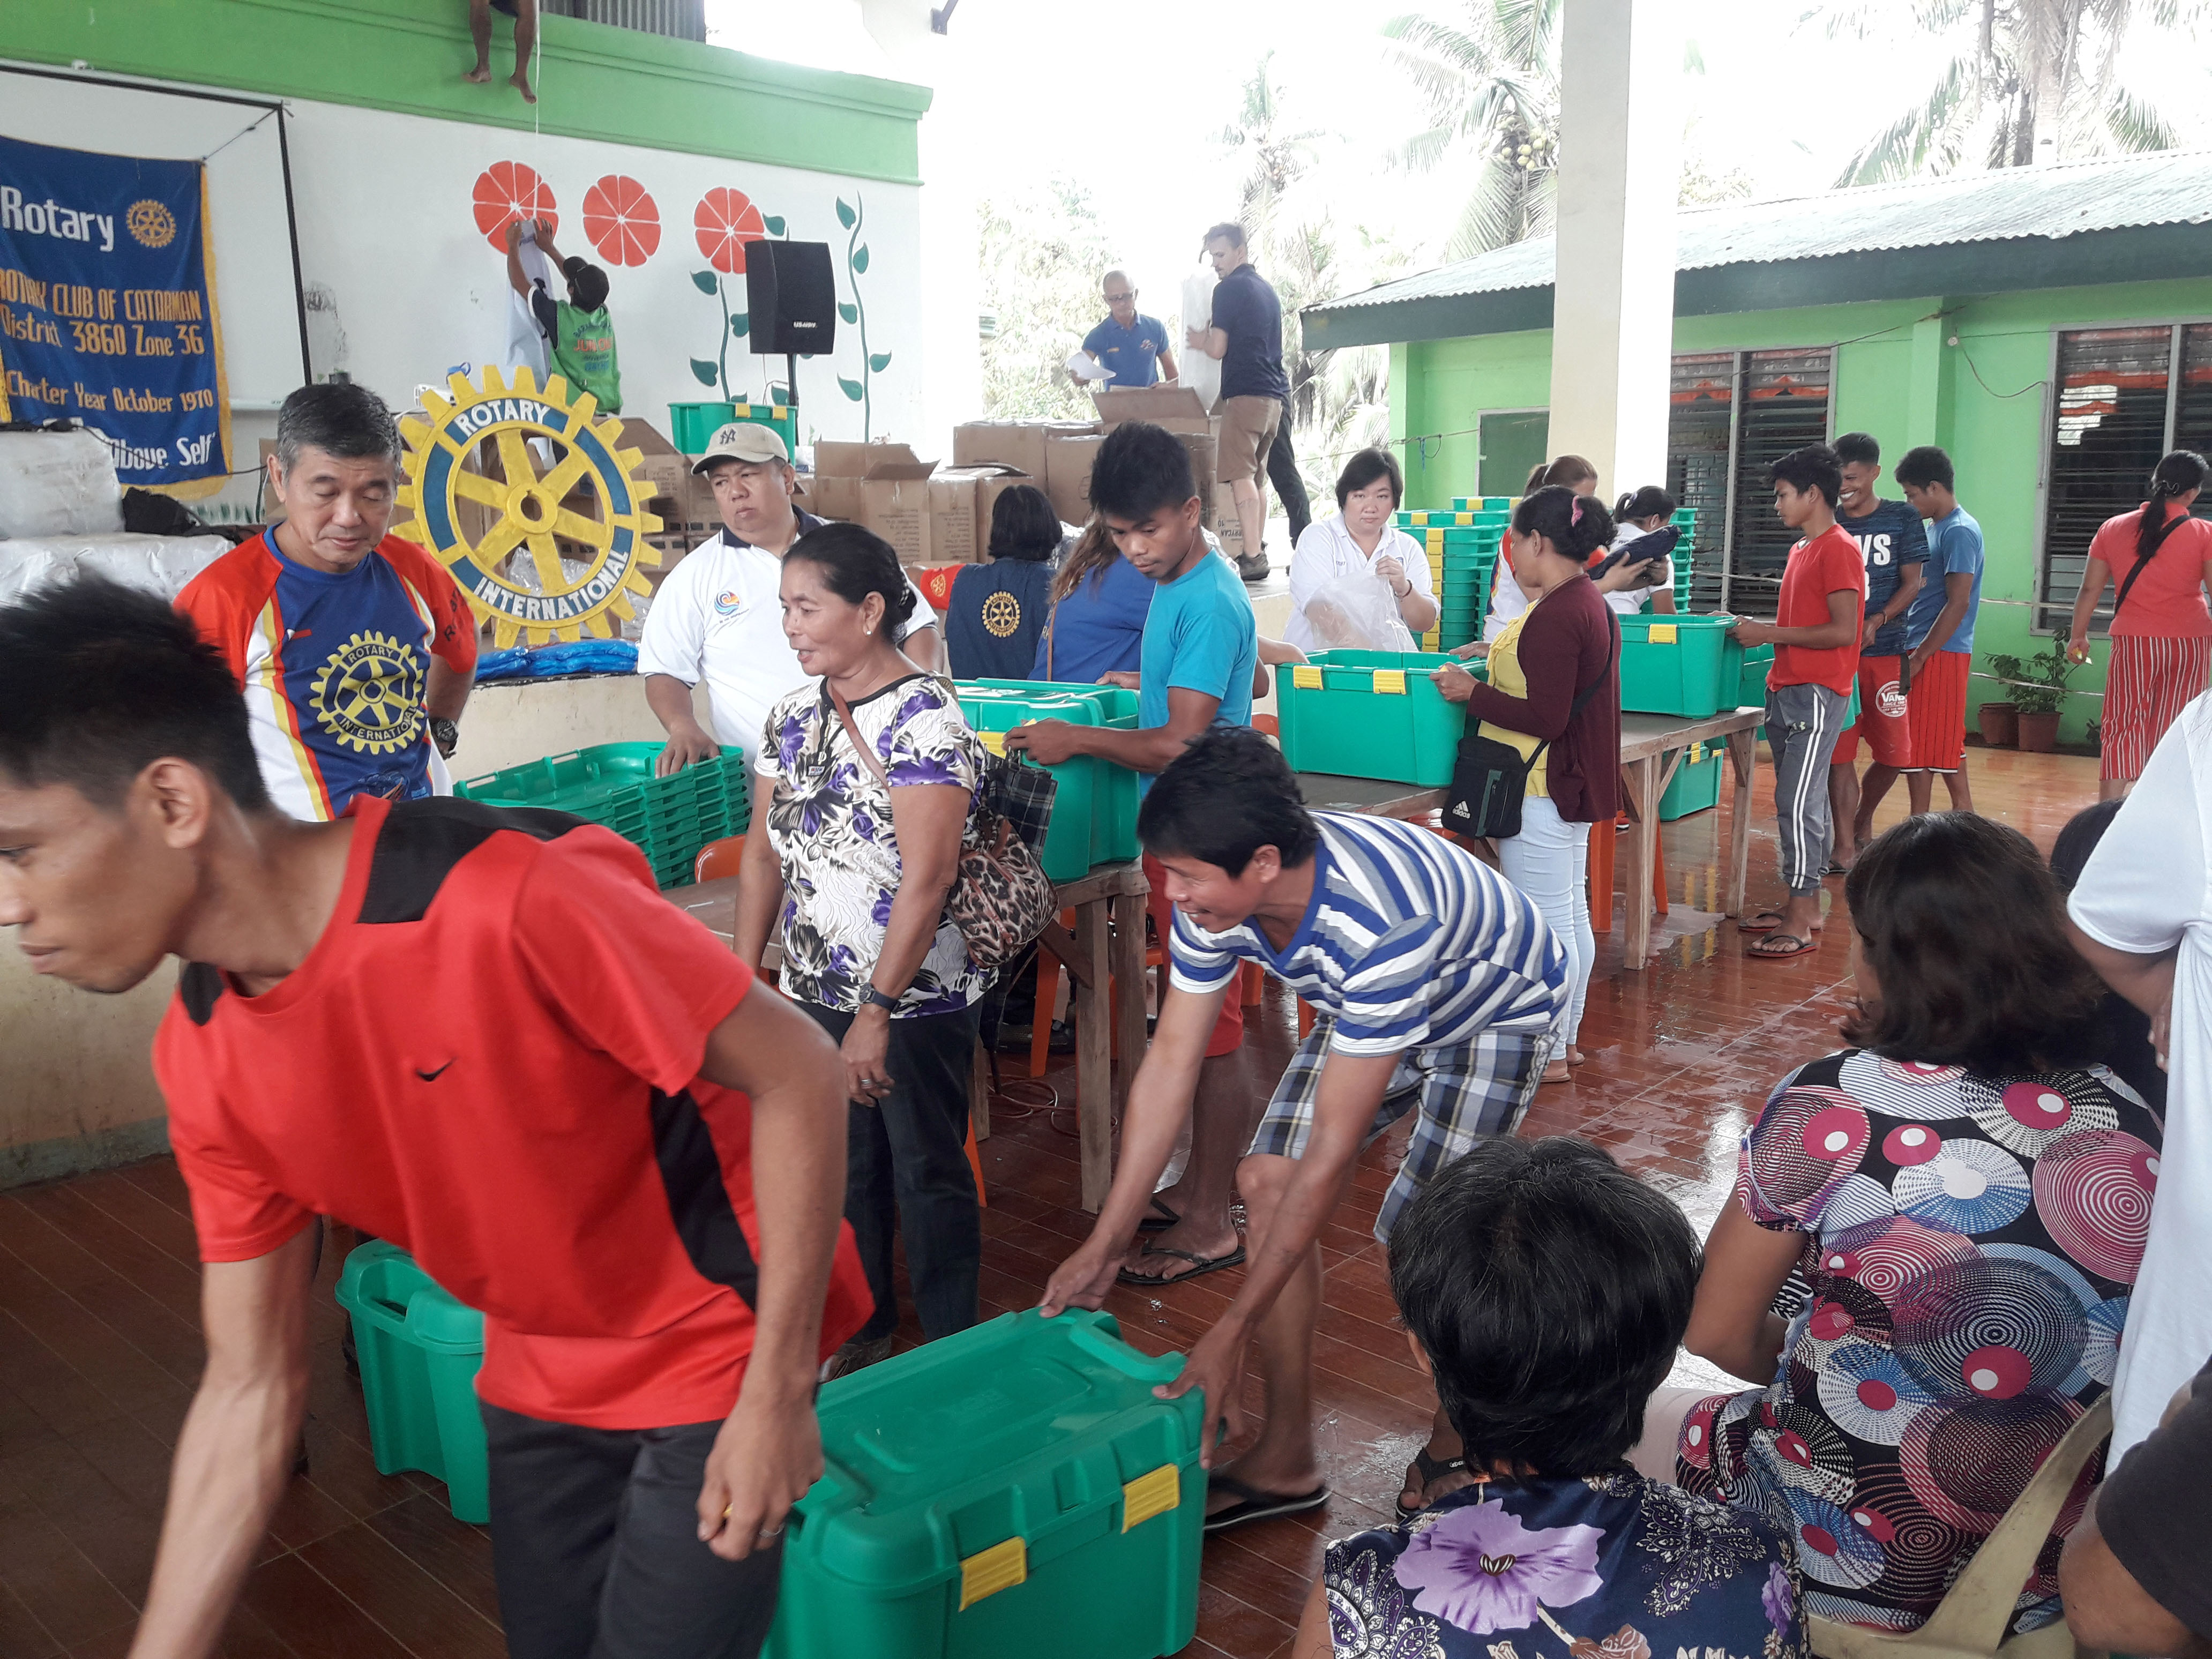 ShelterBox worked seamlessly with the local rotary chapter to distribute kits and aid items to everyone who comes to the facilities